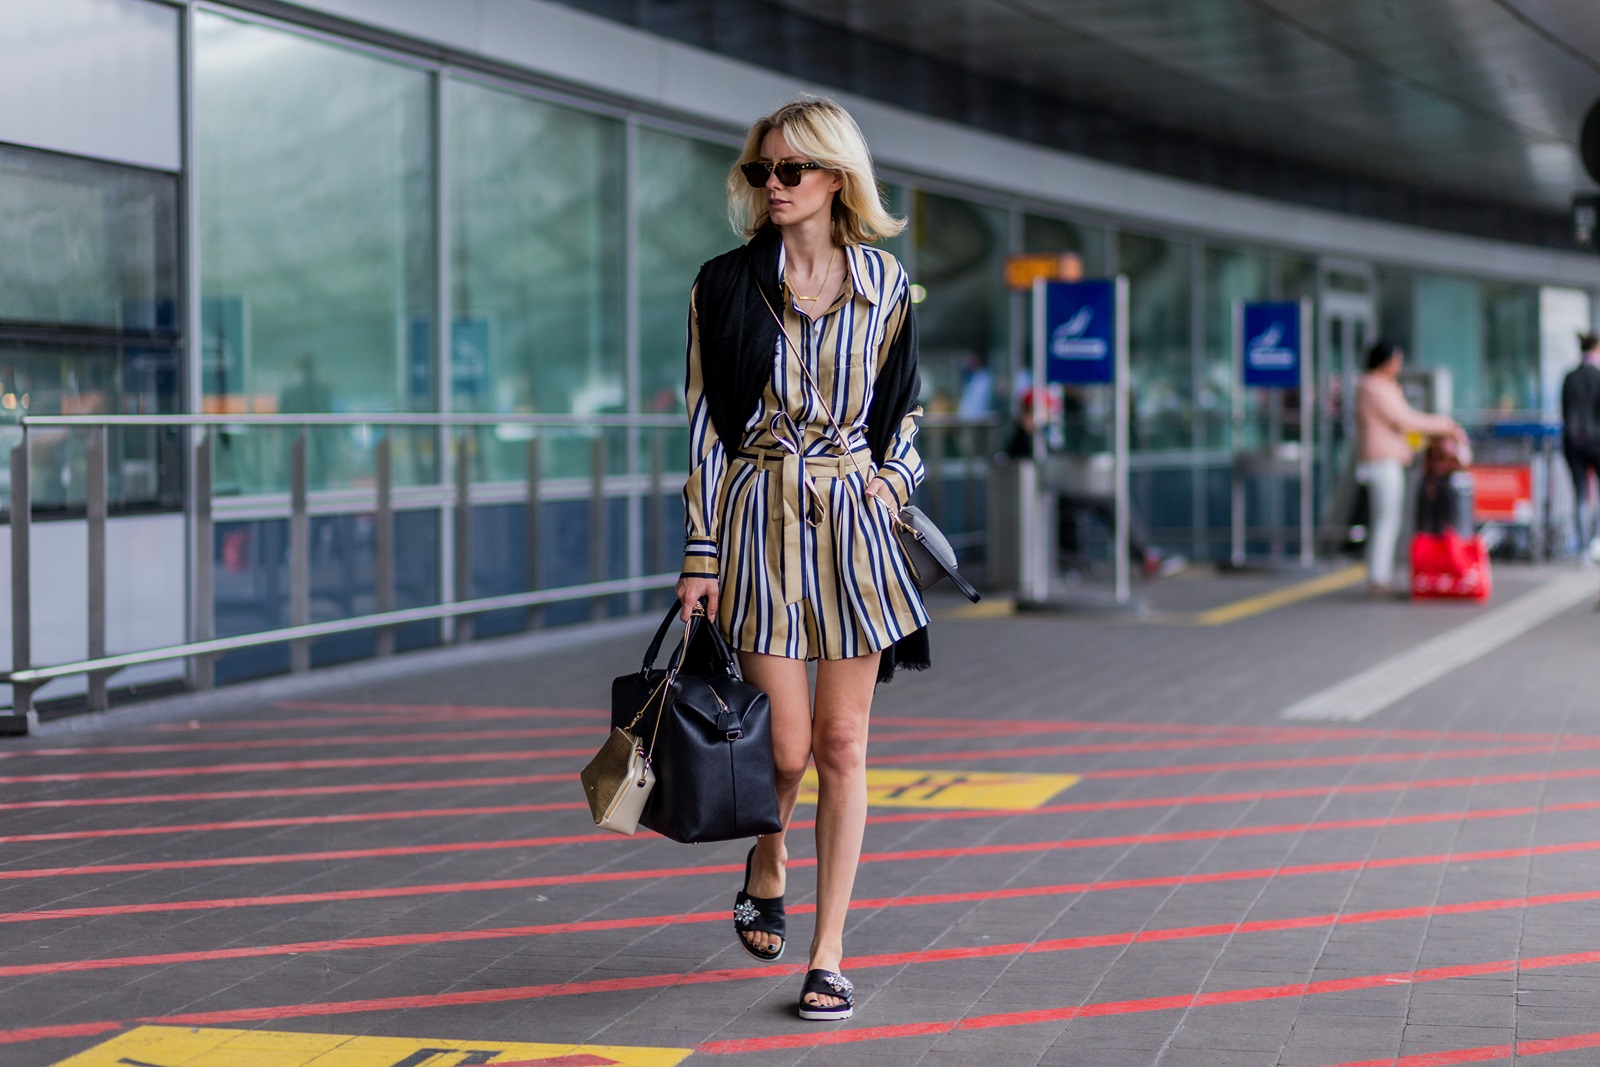 DUESSELDORF, GERMANY - JUNE 1: Lisa Hahnbueck at the airport wearing a striped blouse and shorts from Finders Keepers, black Celine sunglasses, a black scarf a black weekender bag from Aigner Munich and golden bag and Marc Cain slippers on June 1, 2016 in Duesseldorf, Germany. (Photo by Christian Vierig/Getty Images) *** Local Caption *** Lisa Hahnbueck